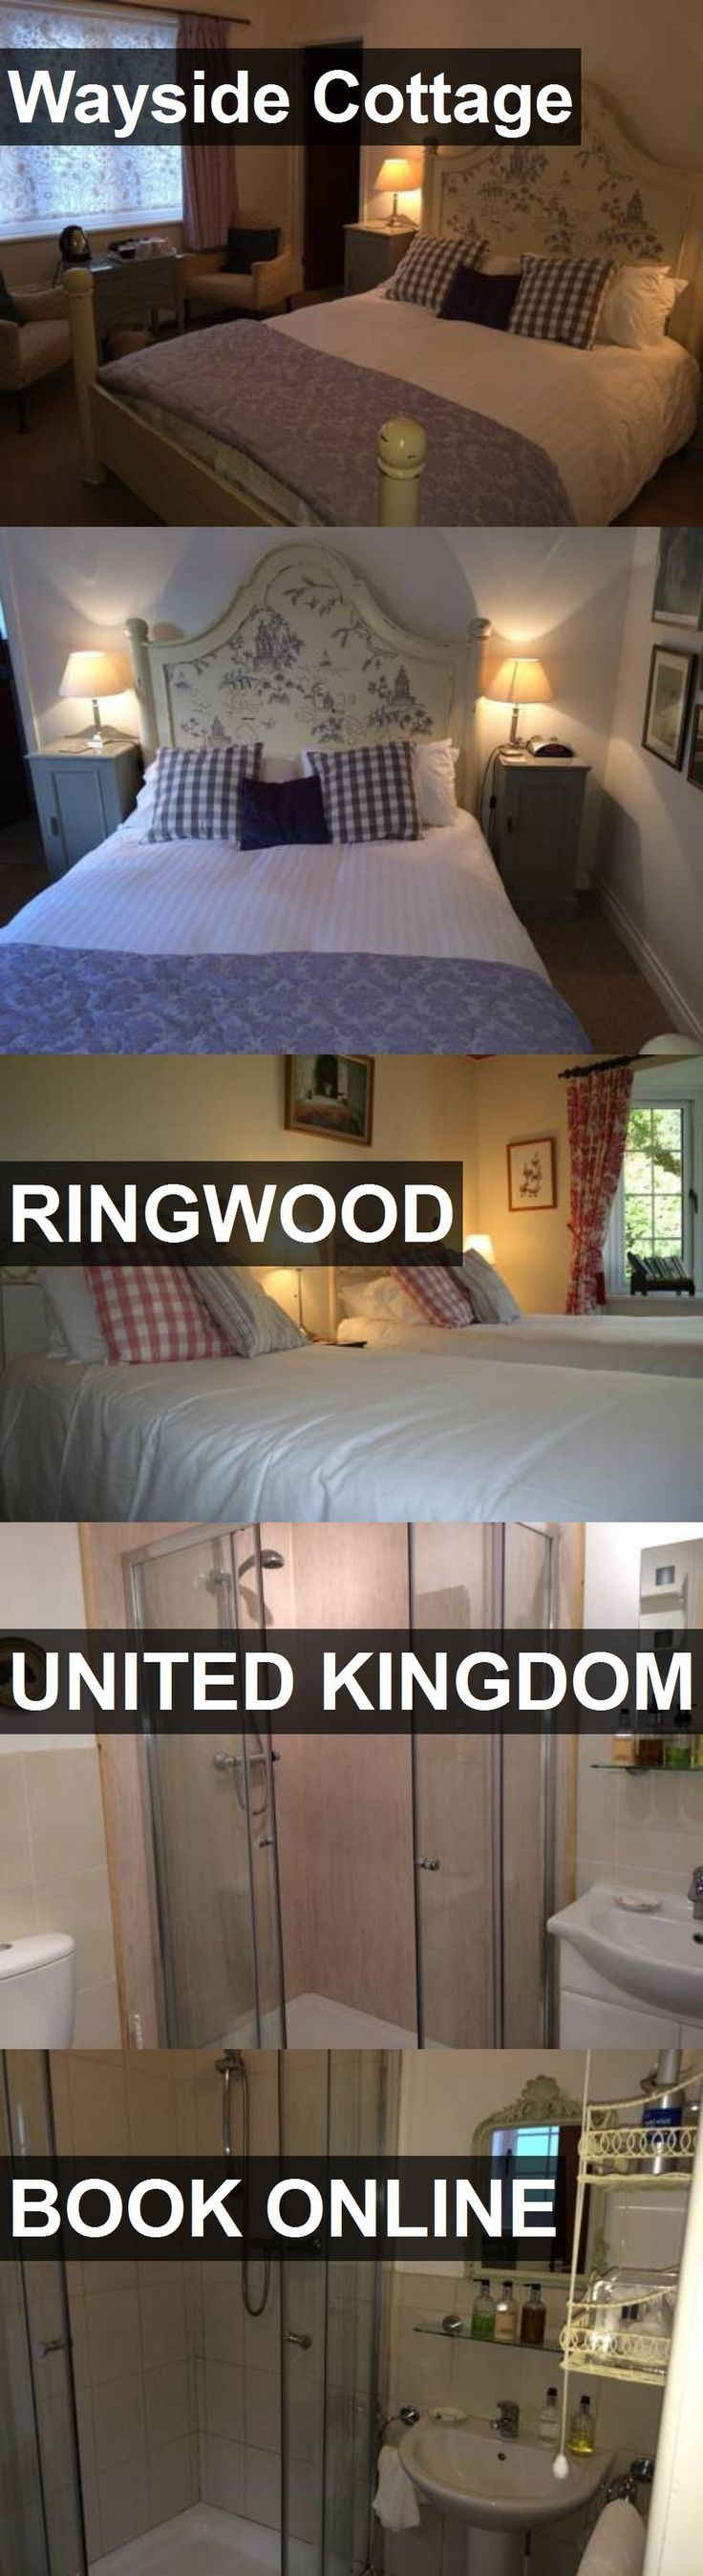 Hotel Wayside Cottage in Ringwood, United Kingdom. For more information, photos, reviews and best prices please follow the link. #UnitedKingdom #Ringwood #WaysideCottage #hotel #travel #vacation